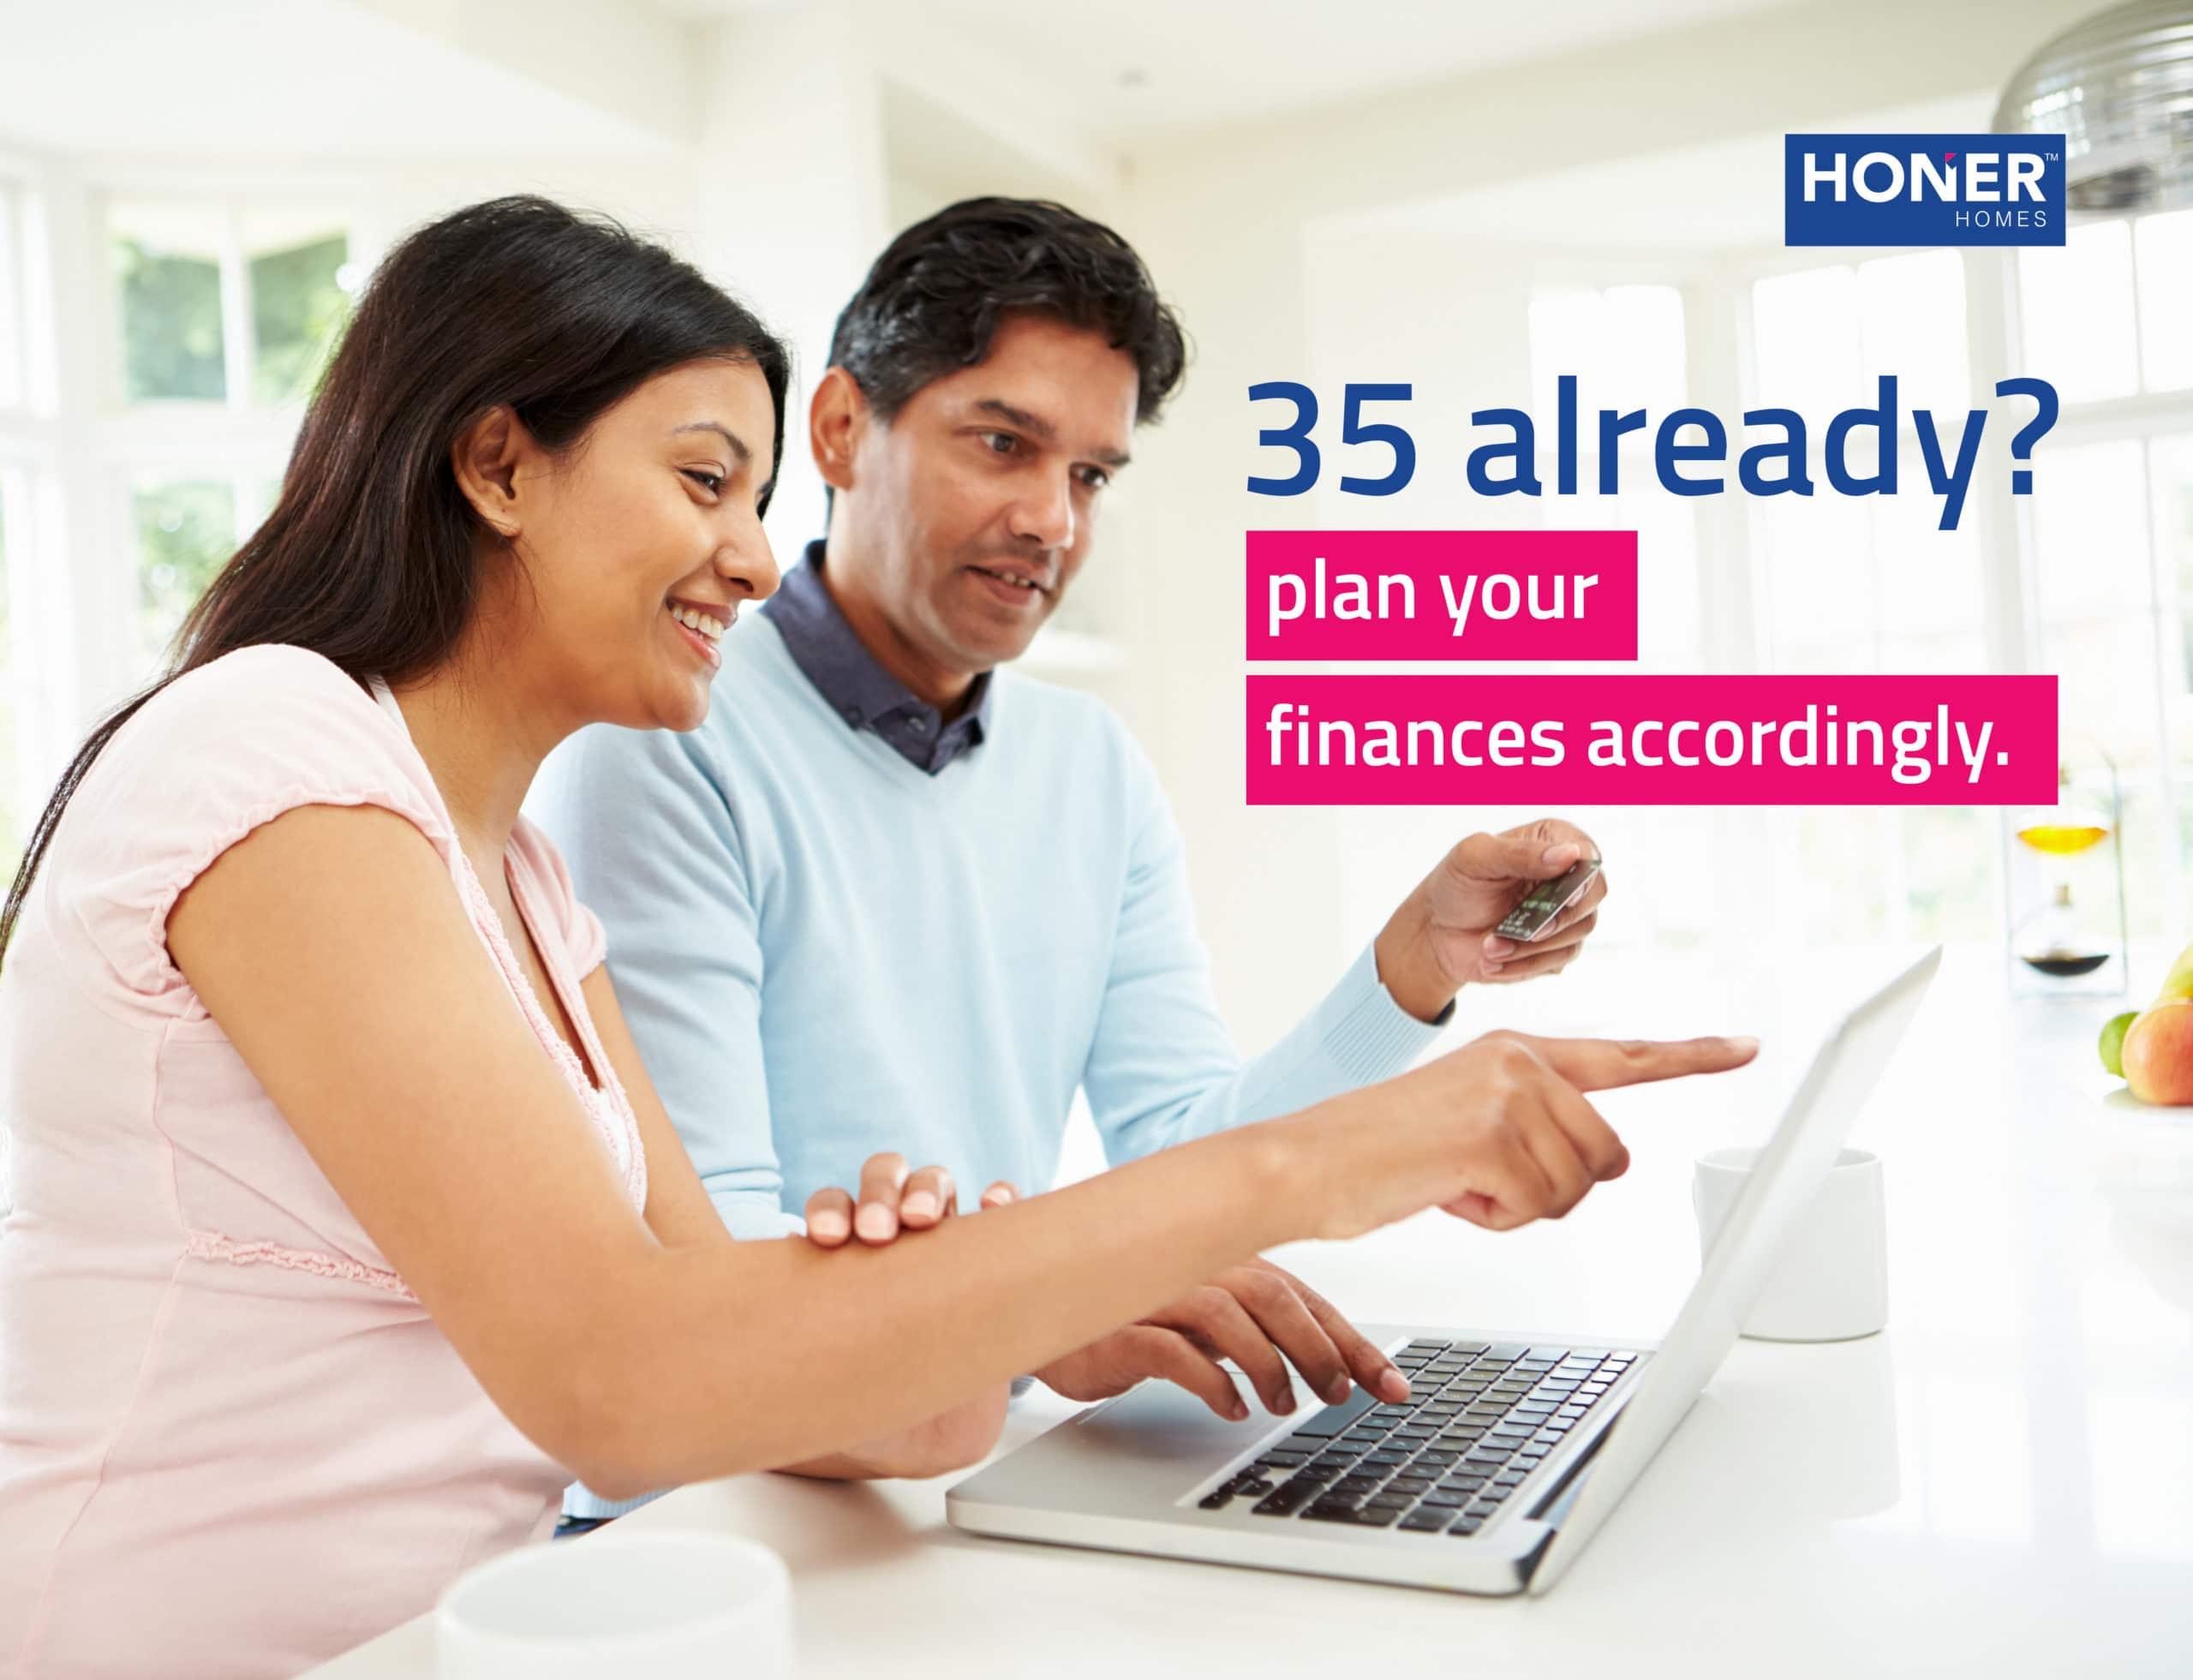 35 Already? Have you planned your finances well?